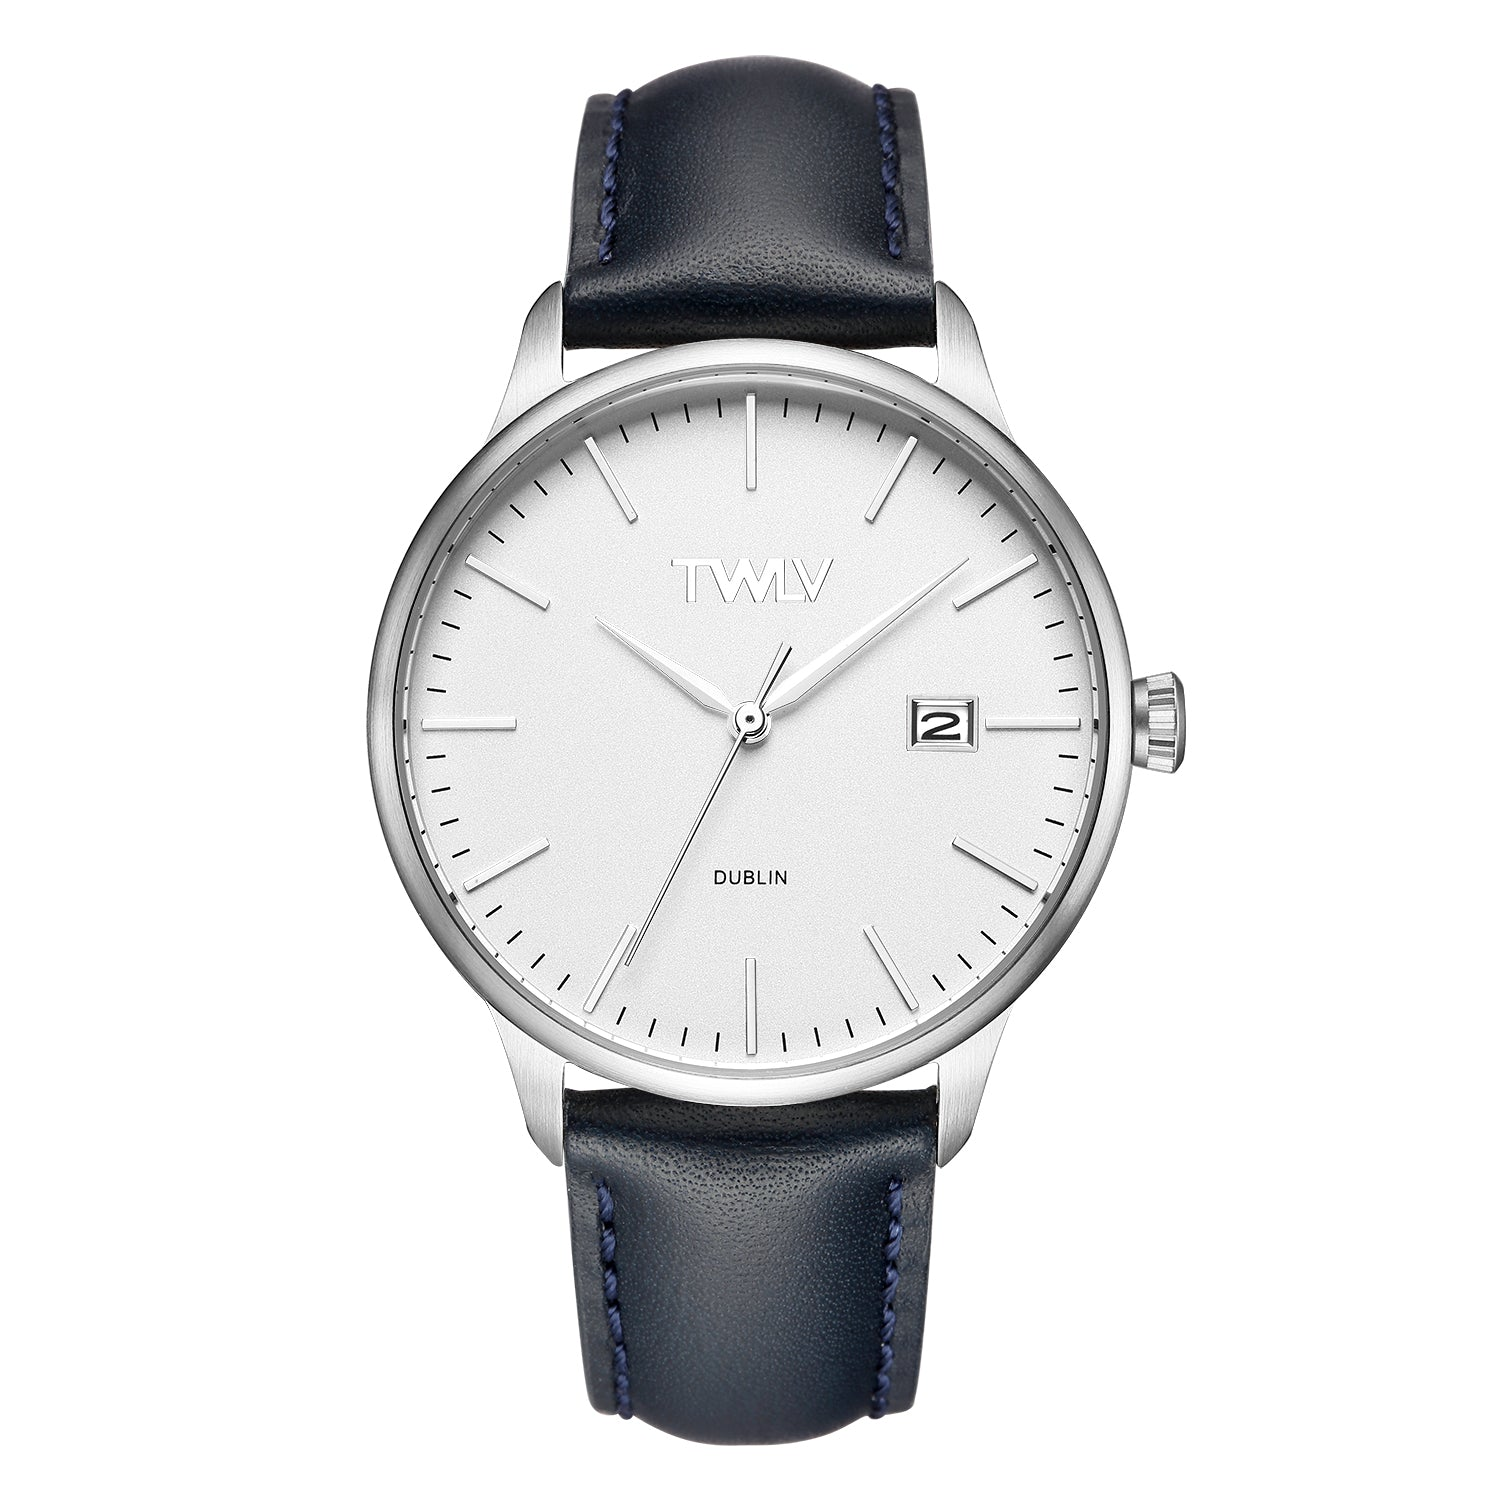 TWLV Mr. Smith Navy Strap Steel Watch